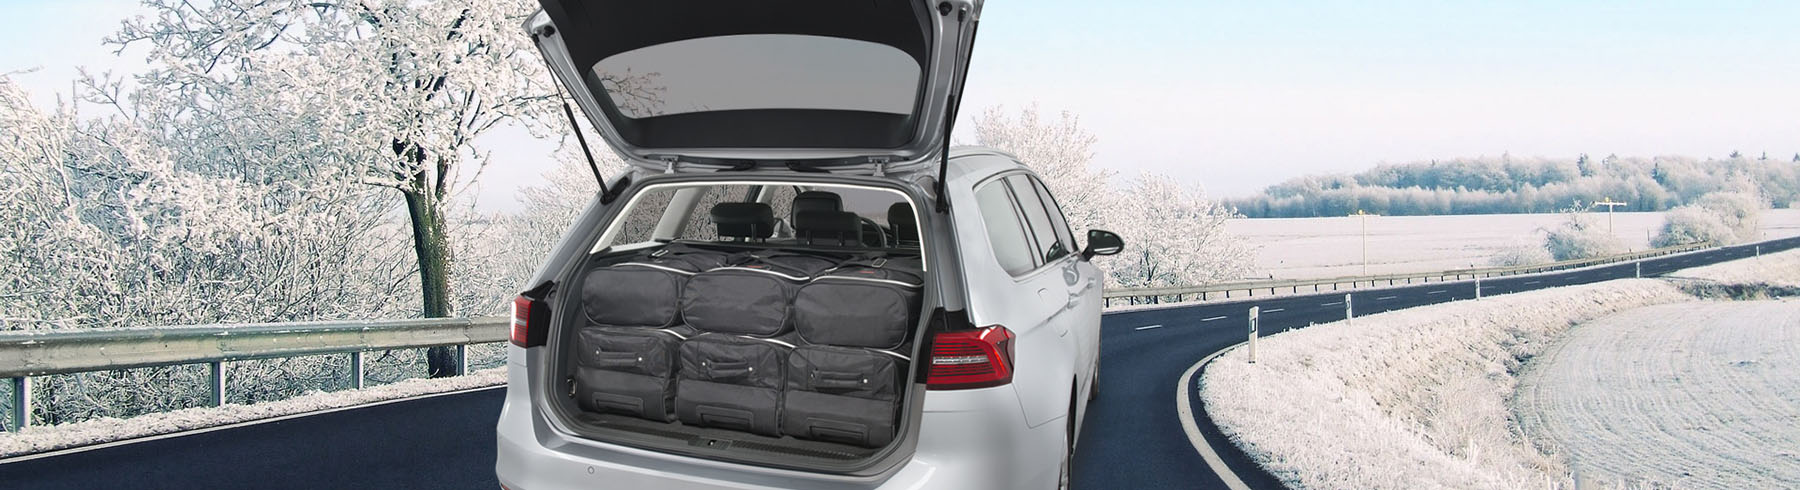 car-bags-new-design-winter-2